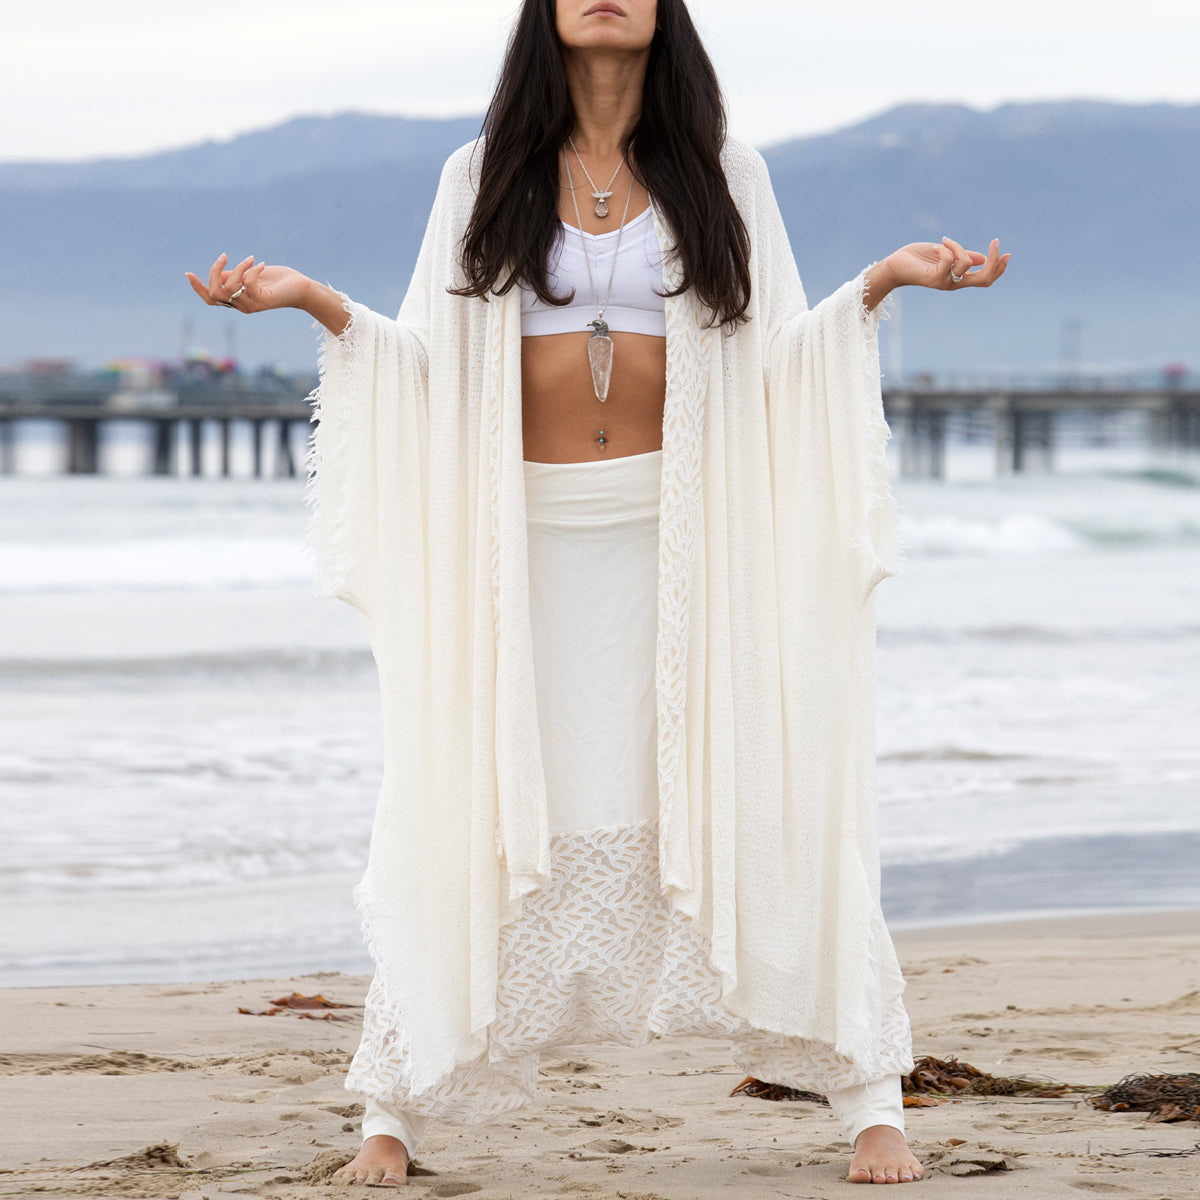 abunDANCE | Dance of Liberation Ceremonial Wrap